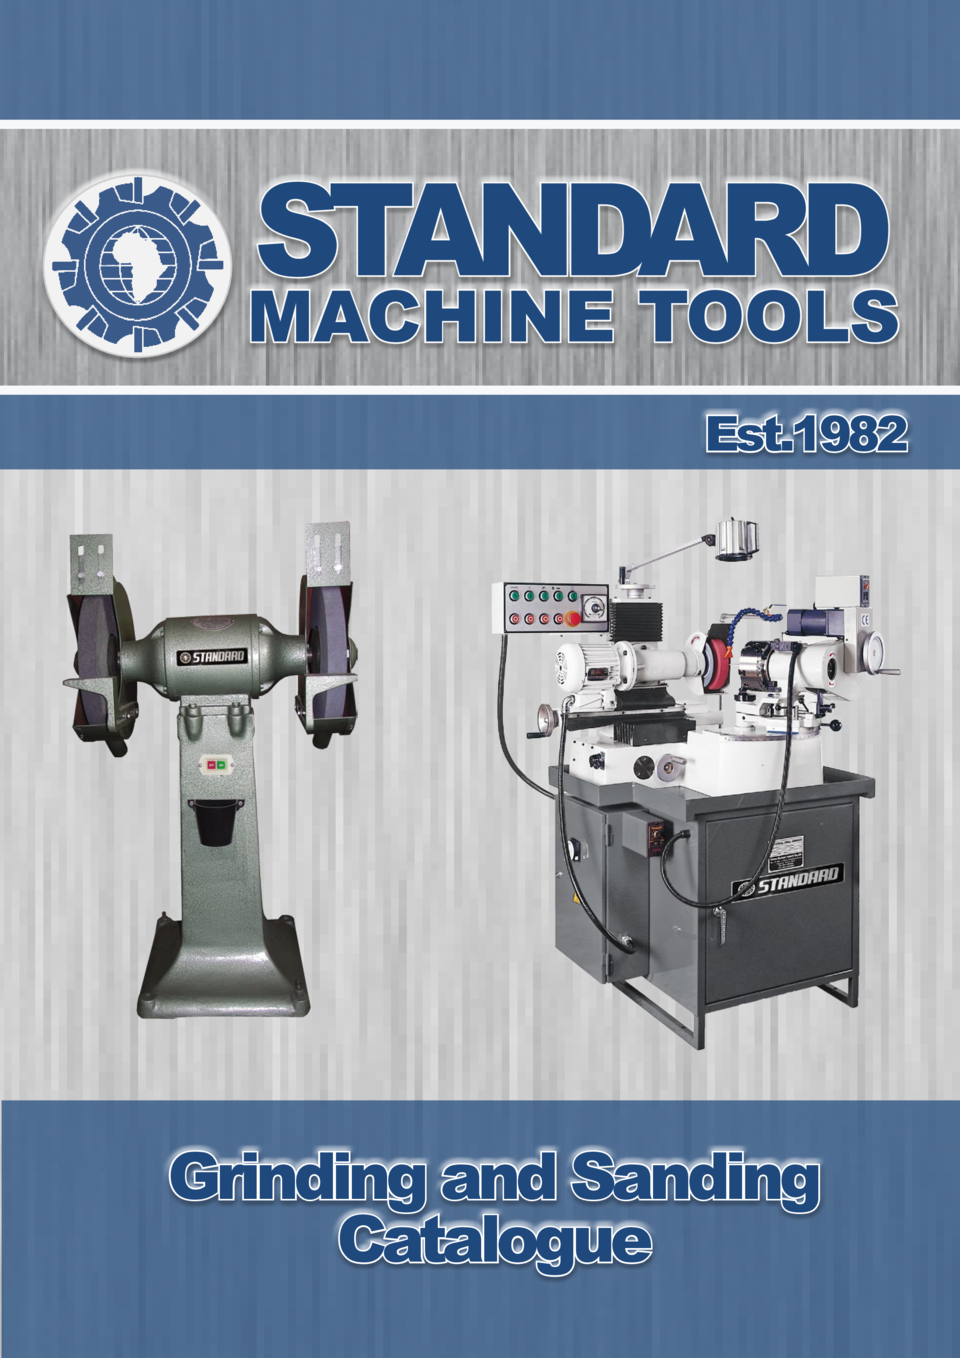 STANDARD  MACHINE TOOLS Est.1982  Grinding and Sanding Catalogue